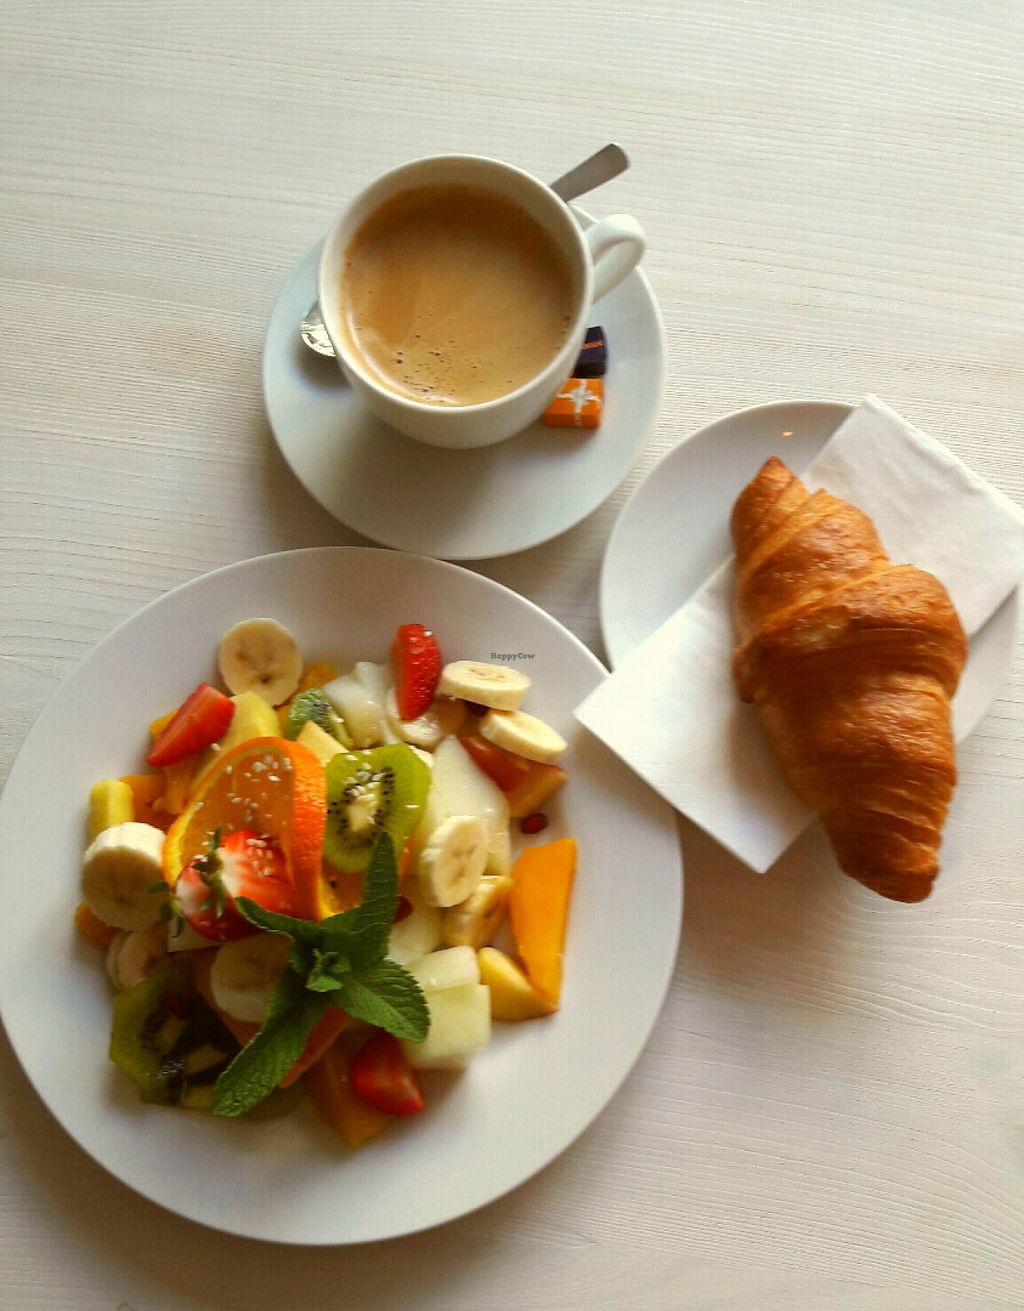 """Photo of Cafe Neue Liebe  by <a href=""""/members/profile/LieschenvanMueller"""">LieschenvanMueller</a> <br/>fresh fruit salad & coffee americano & croissant <br/> July 16, 2016  - <a href='/contact/abuse/image/73735/160311'>Report</a>"""